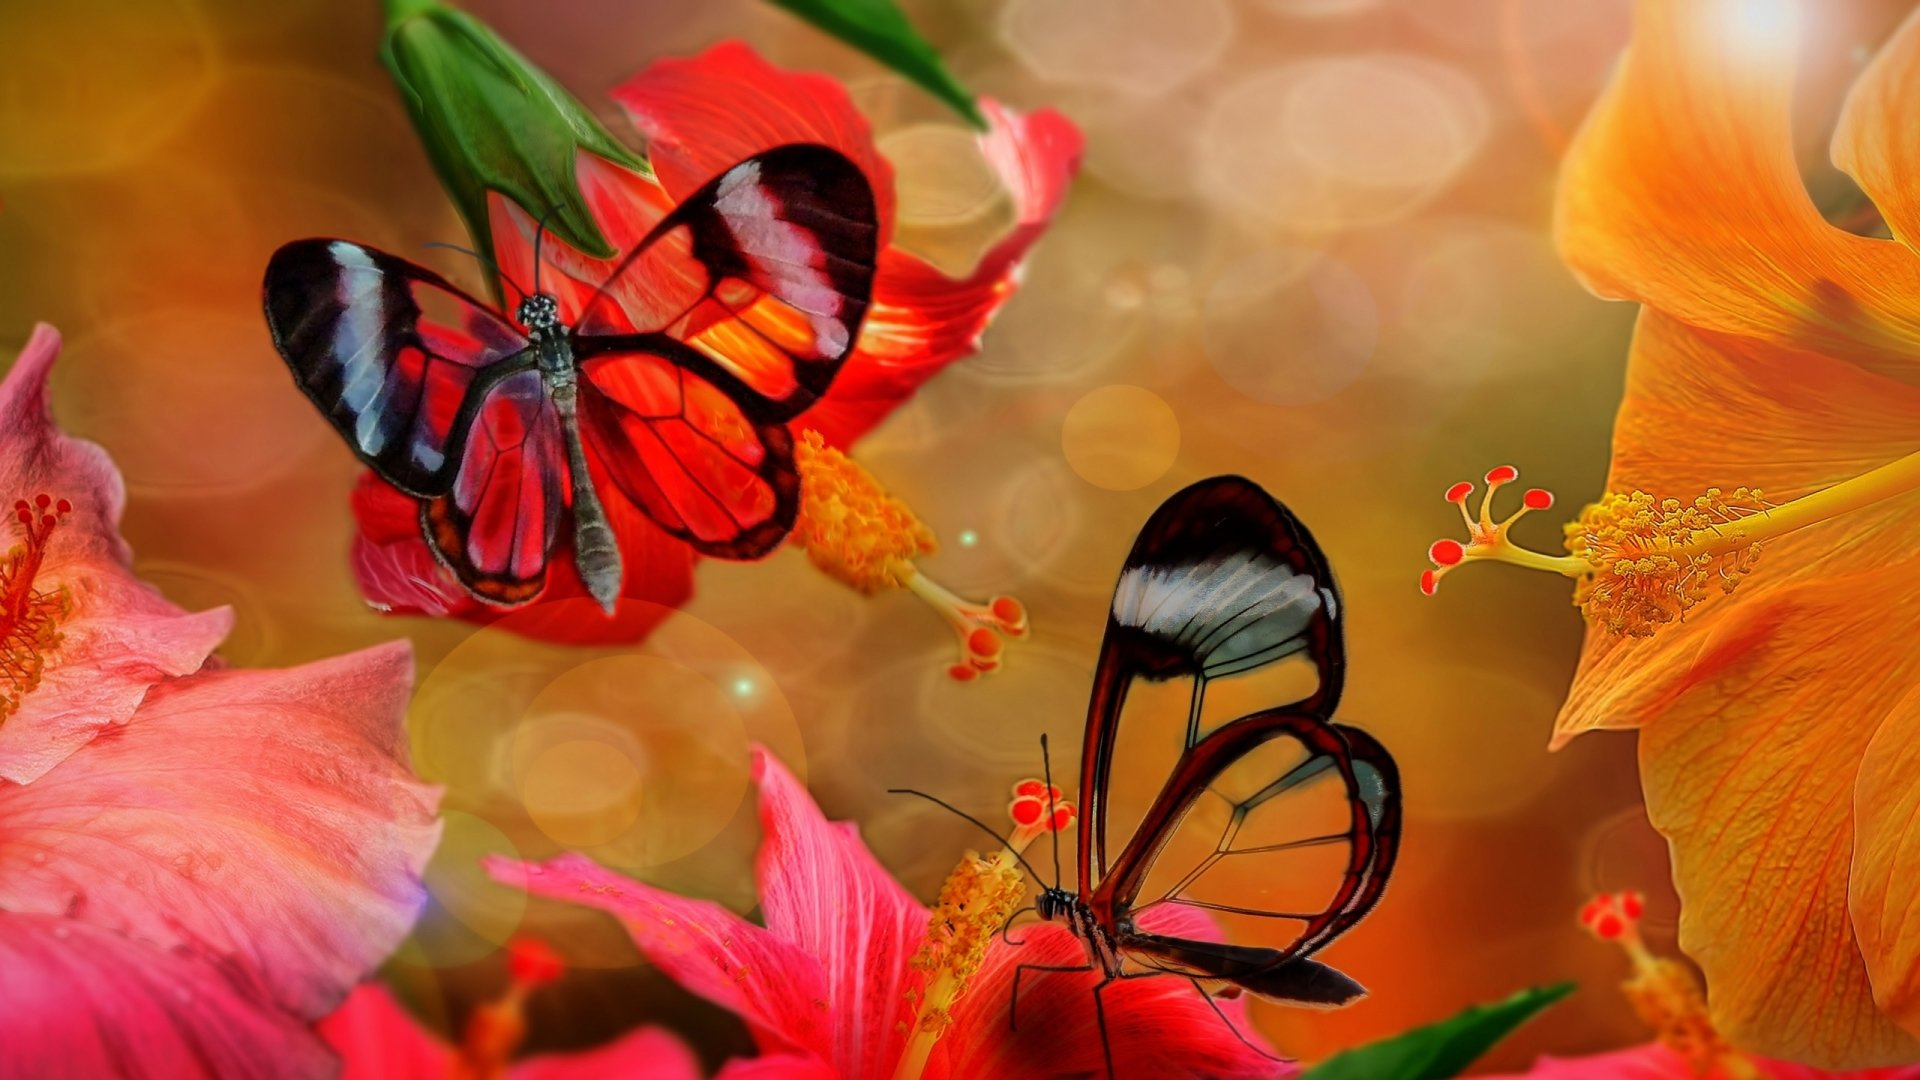 Wallpapers ID:673241